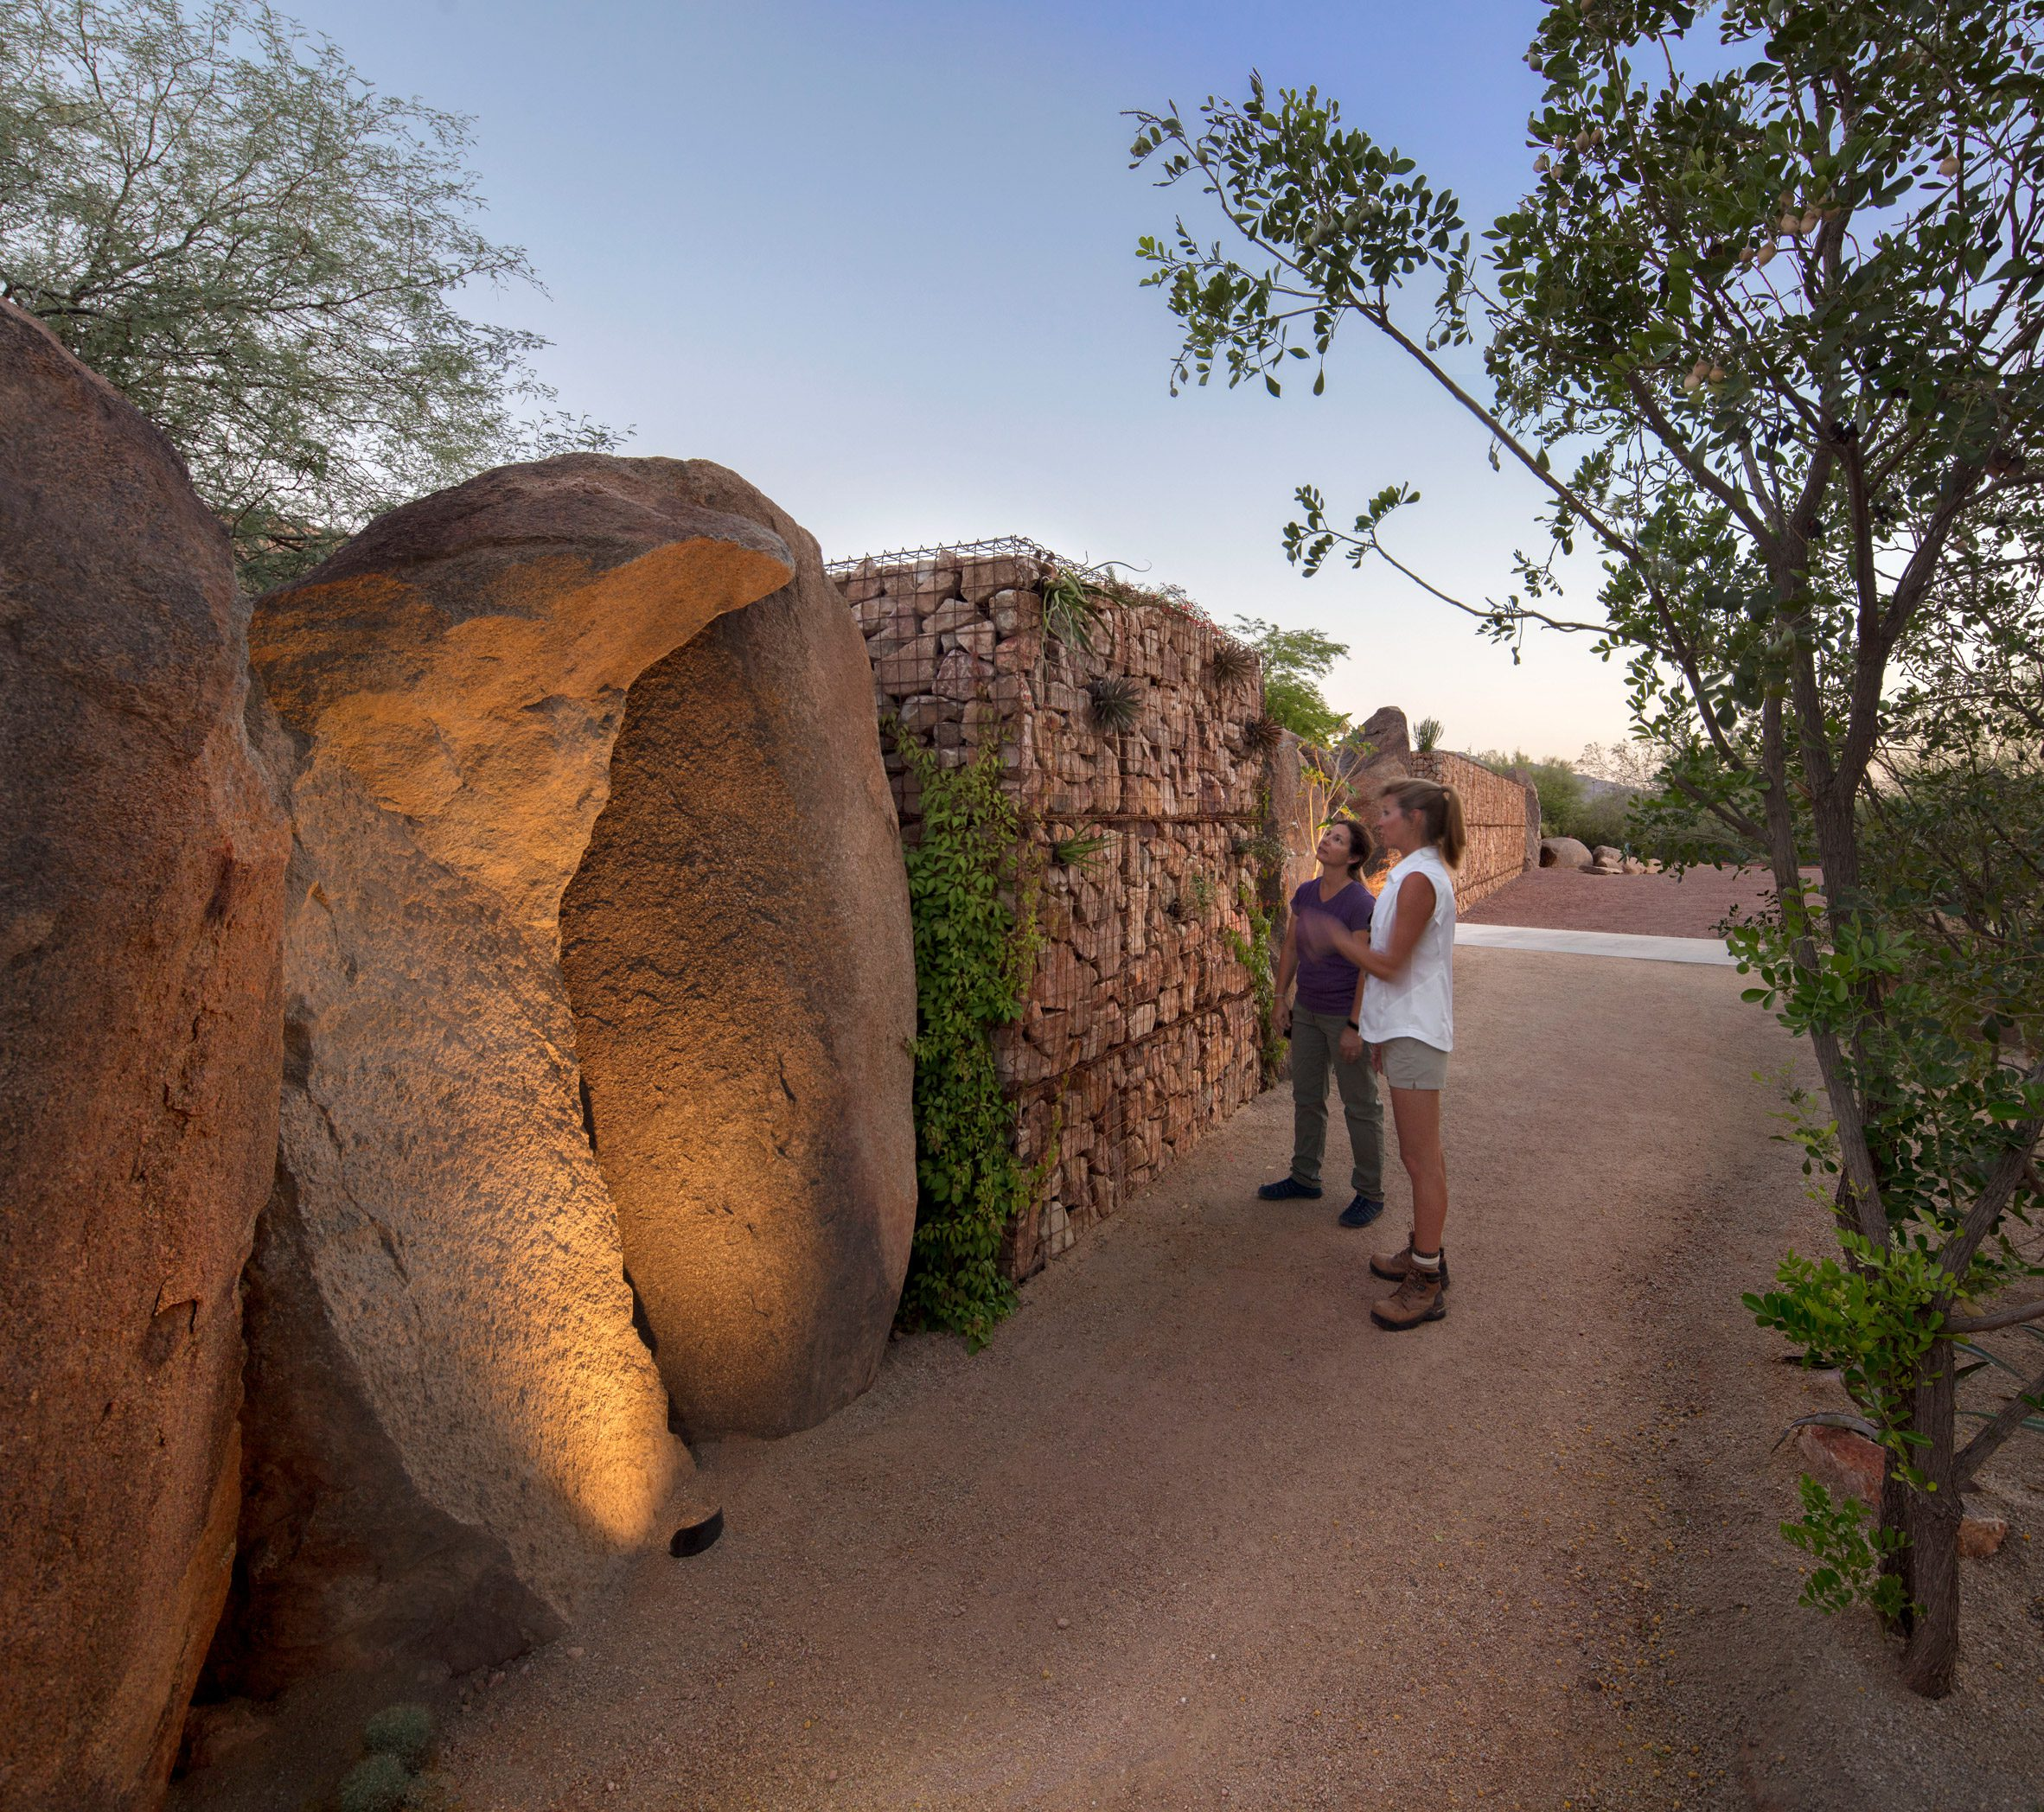 The Great Wall of Boulders